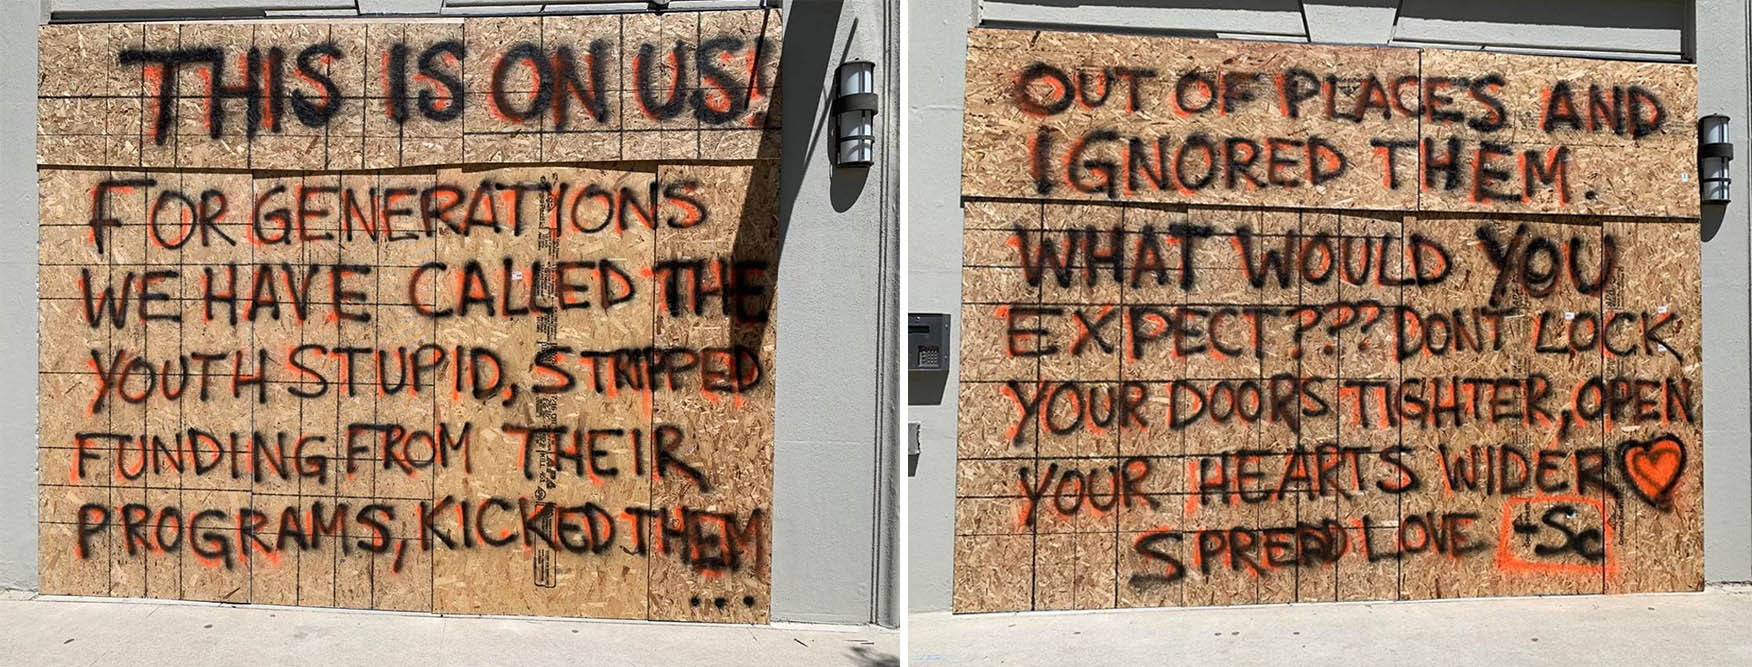 A message on boarded-up storefronts